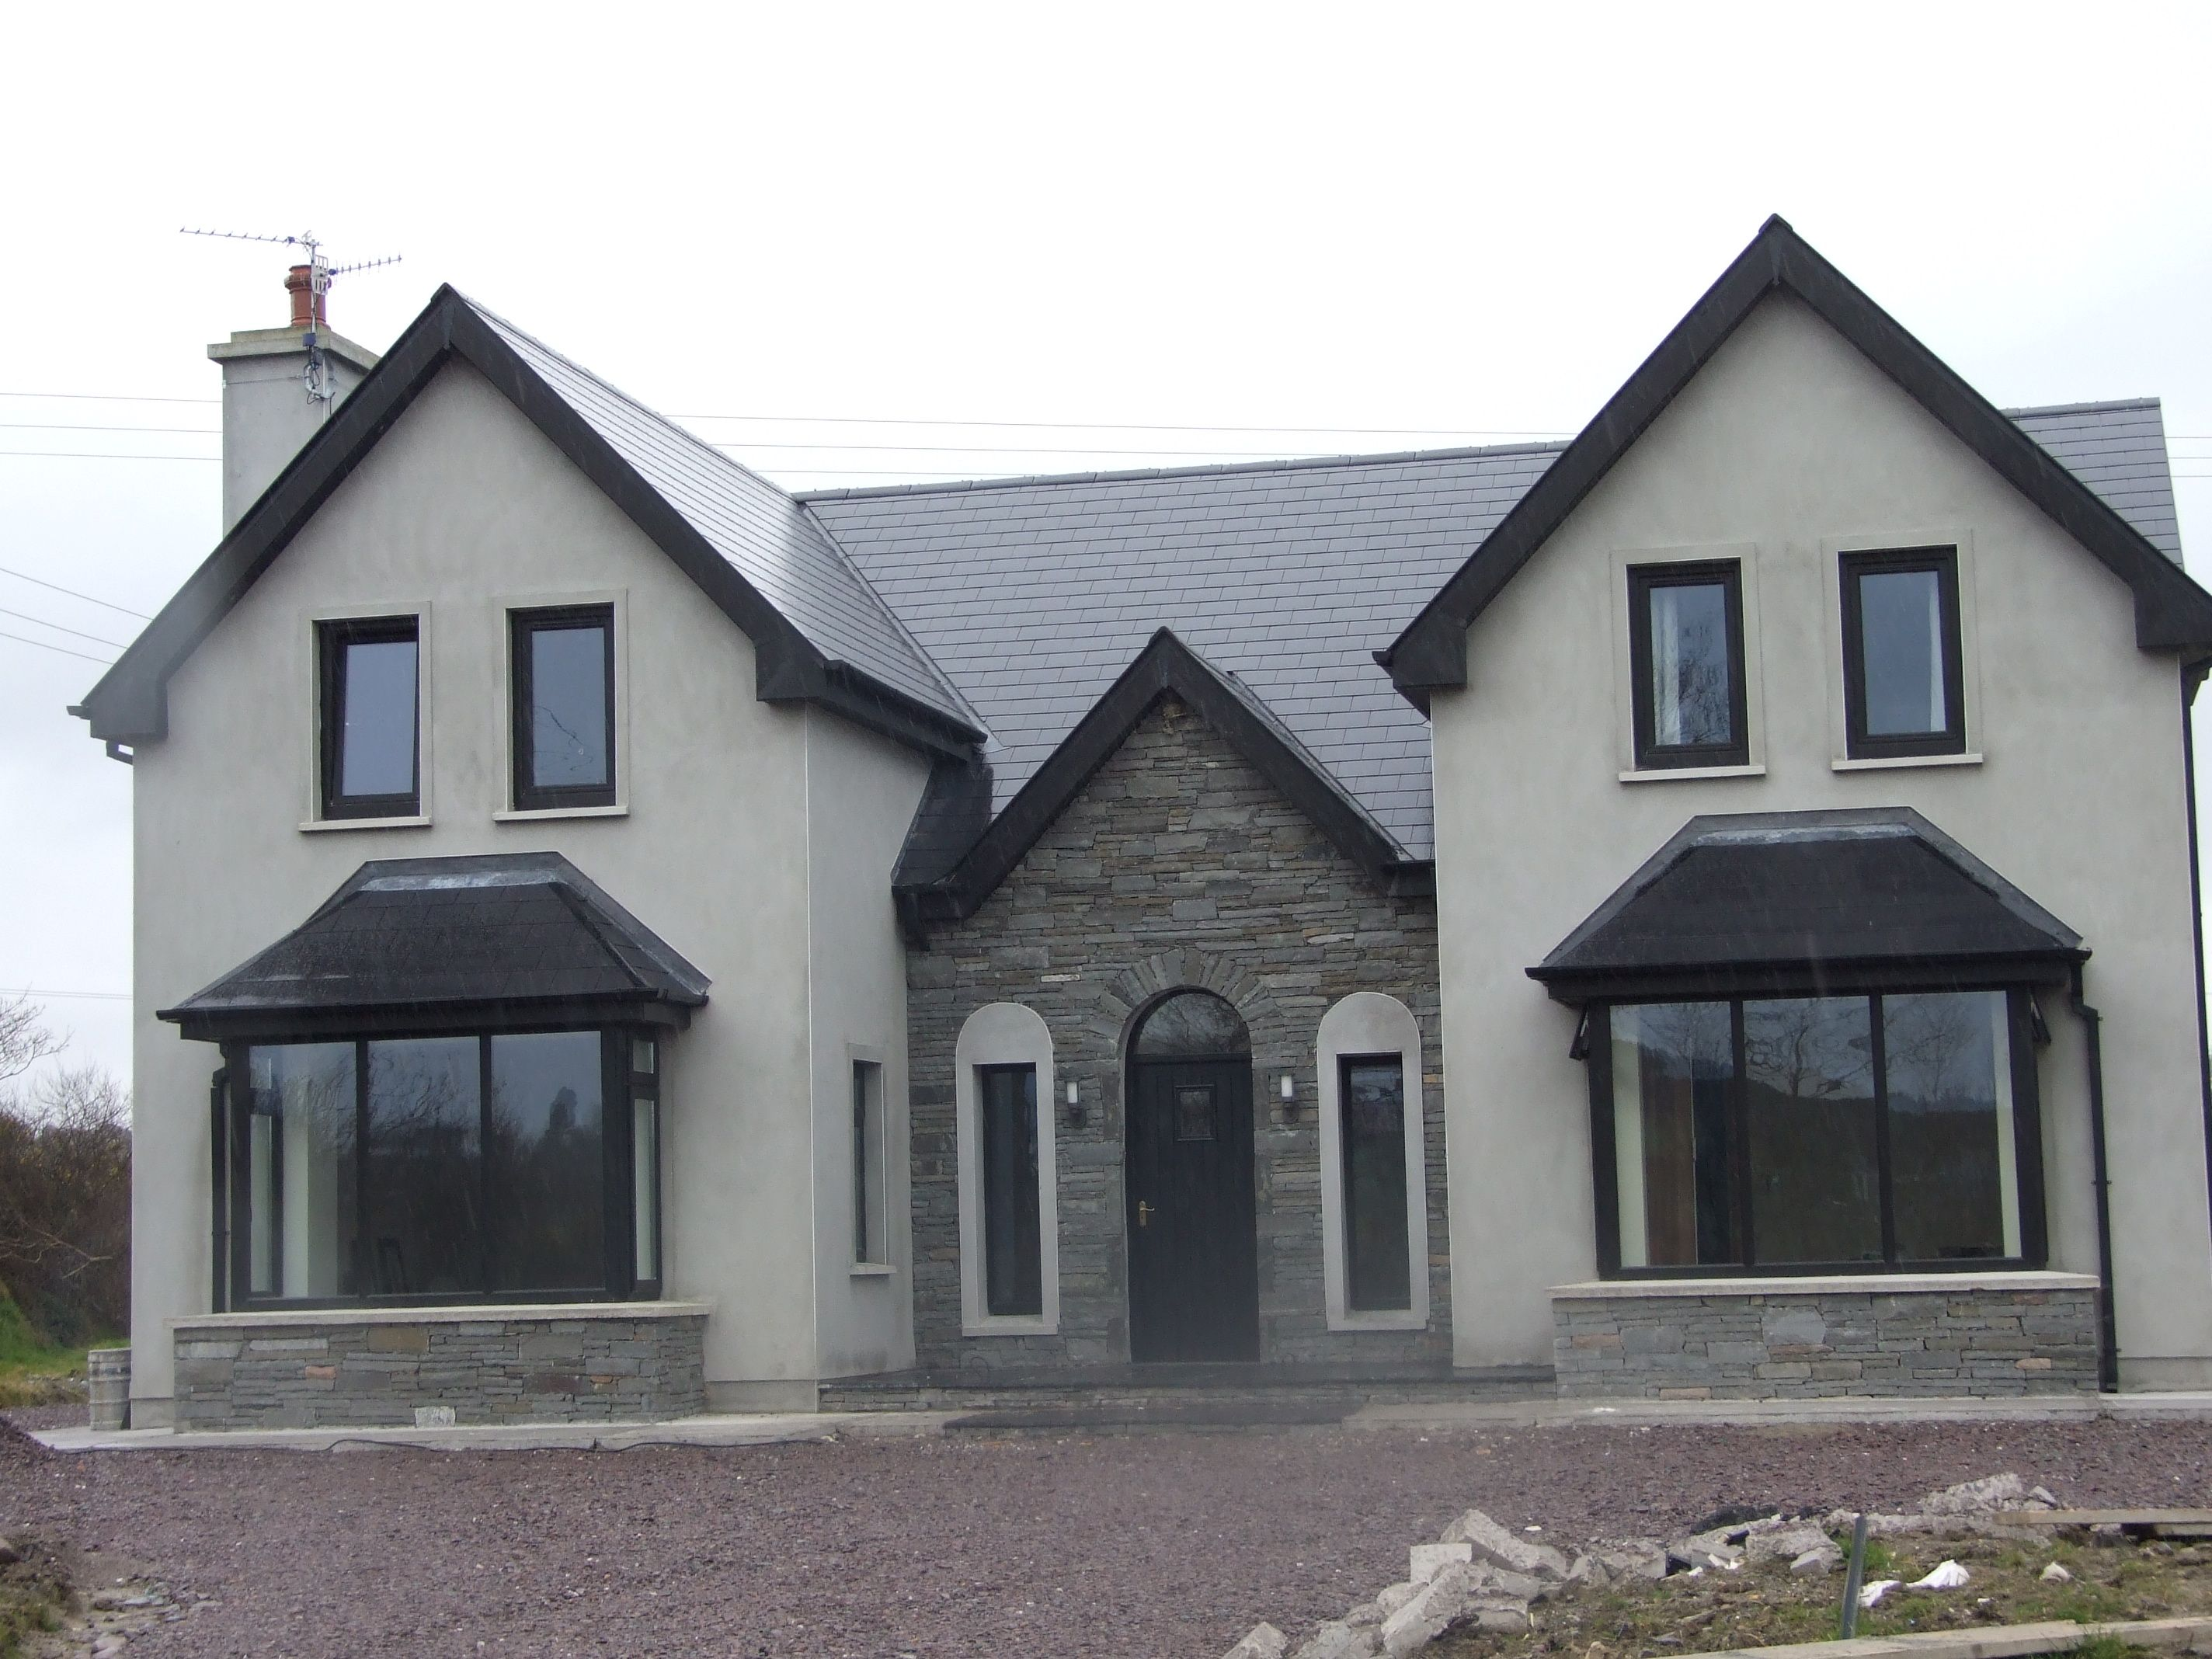 Almost finished new storey and a half residence in kerry 2 story house plans ireland